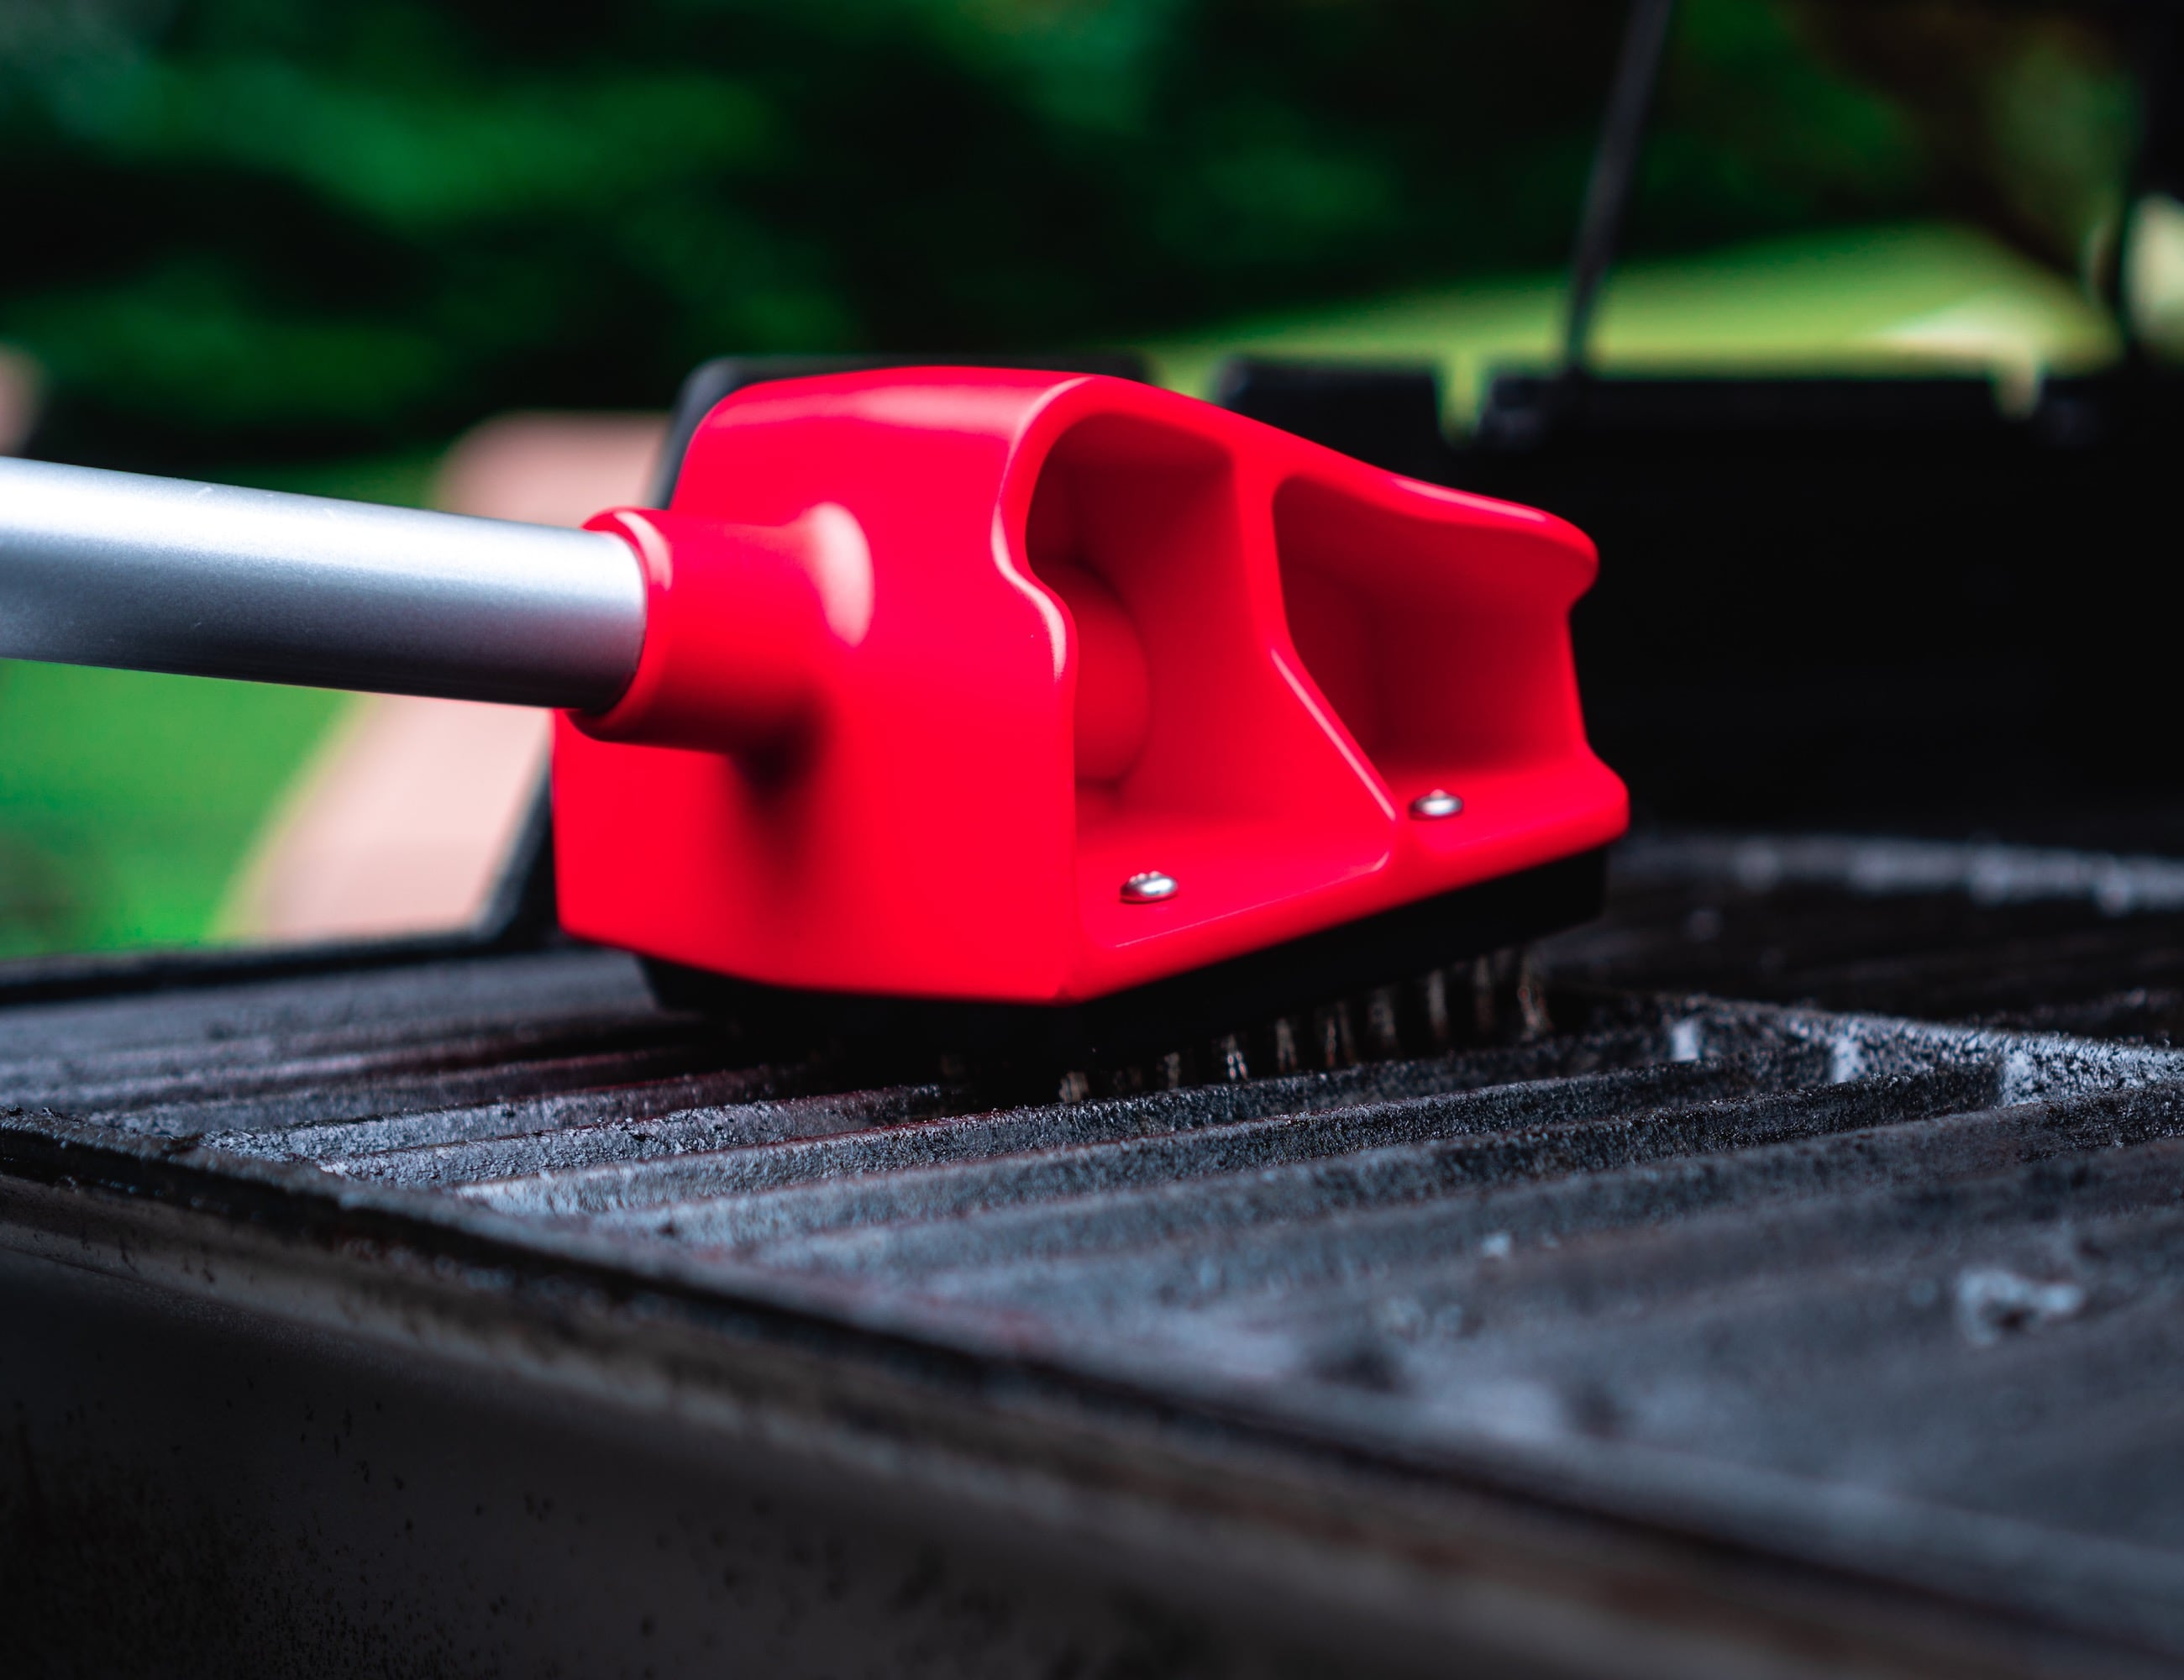 Maggbrush Ultra Safe Grill Brush keeps your grill looking new